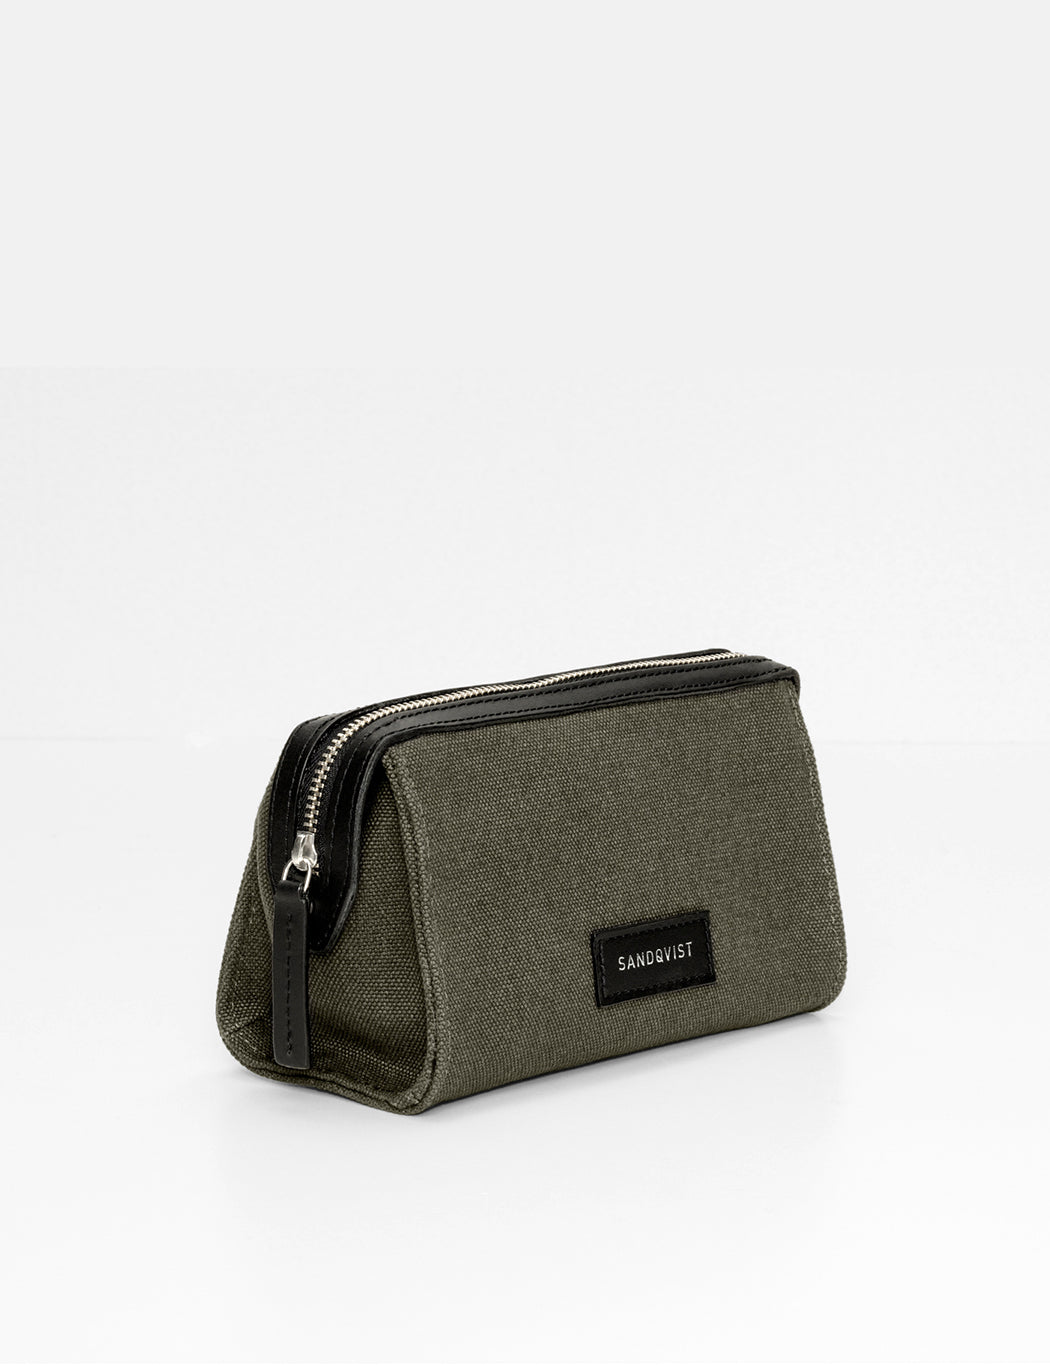 Sandqvist Ina Wash Bag - Beluga Green